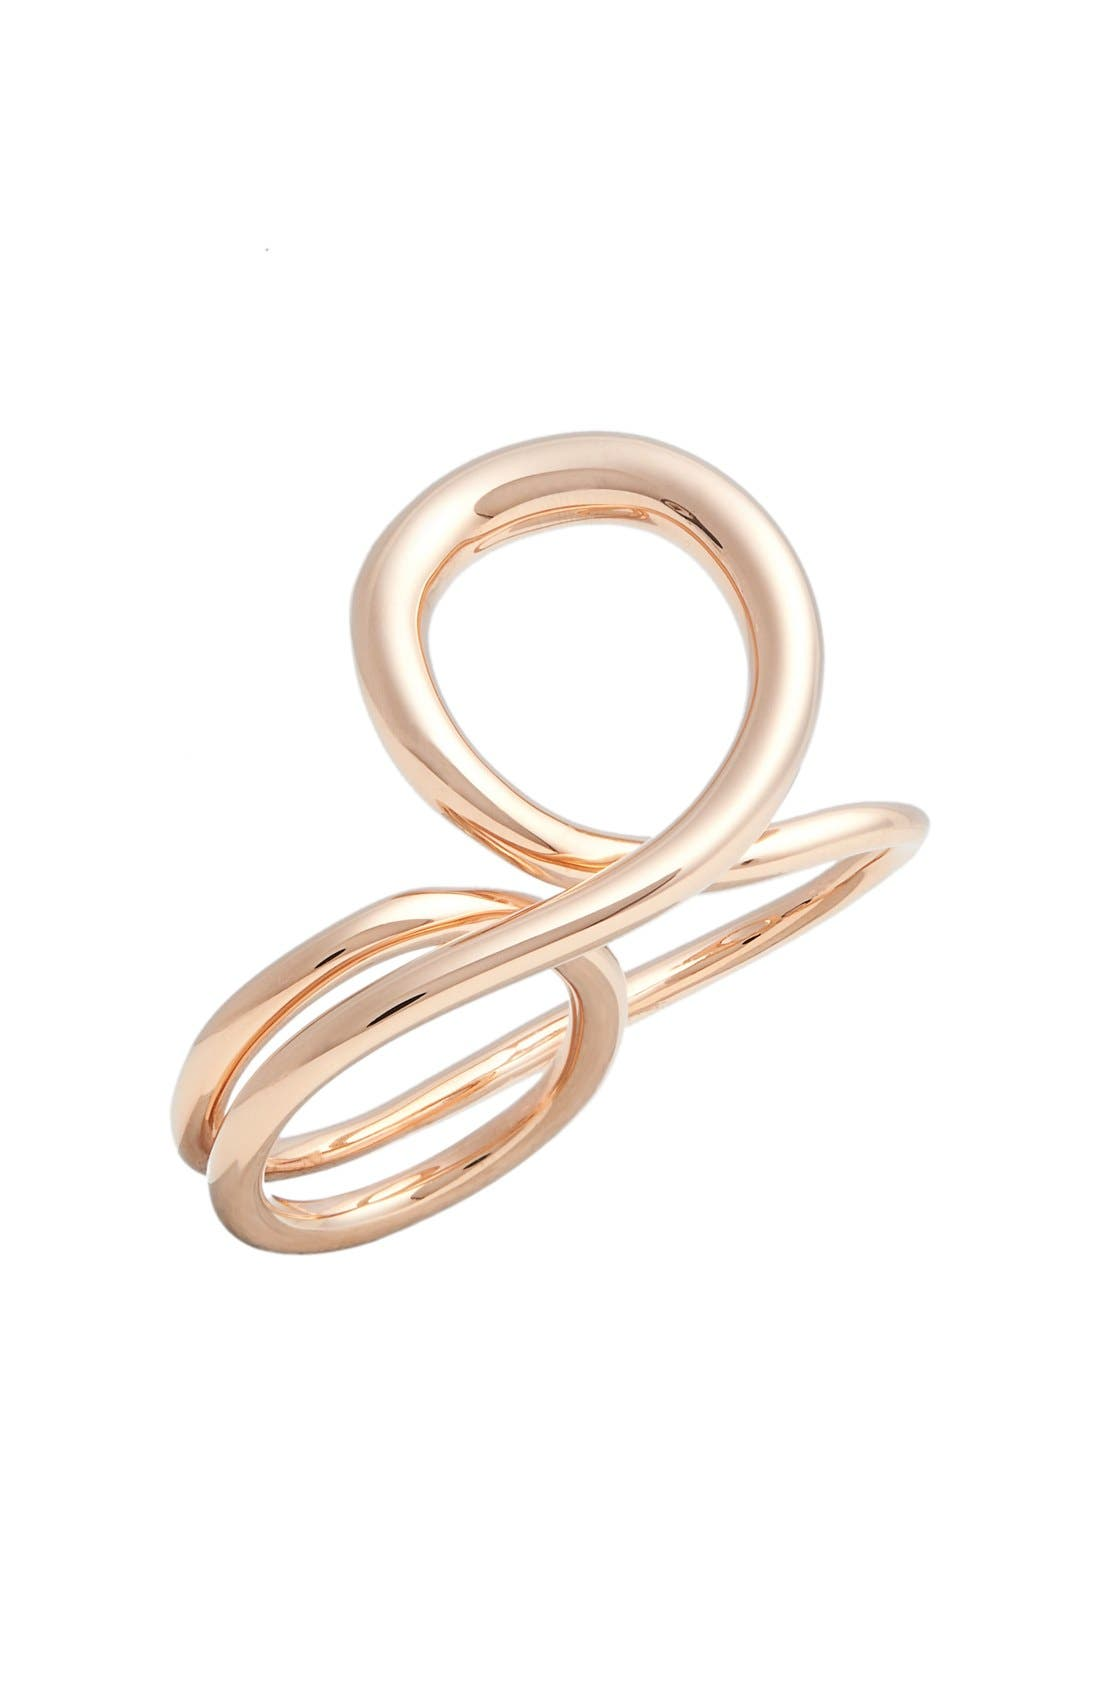 Main Image - Charlotte Chesnais 'Gamma Trip' Vermeil Two-Finger Ring